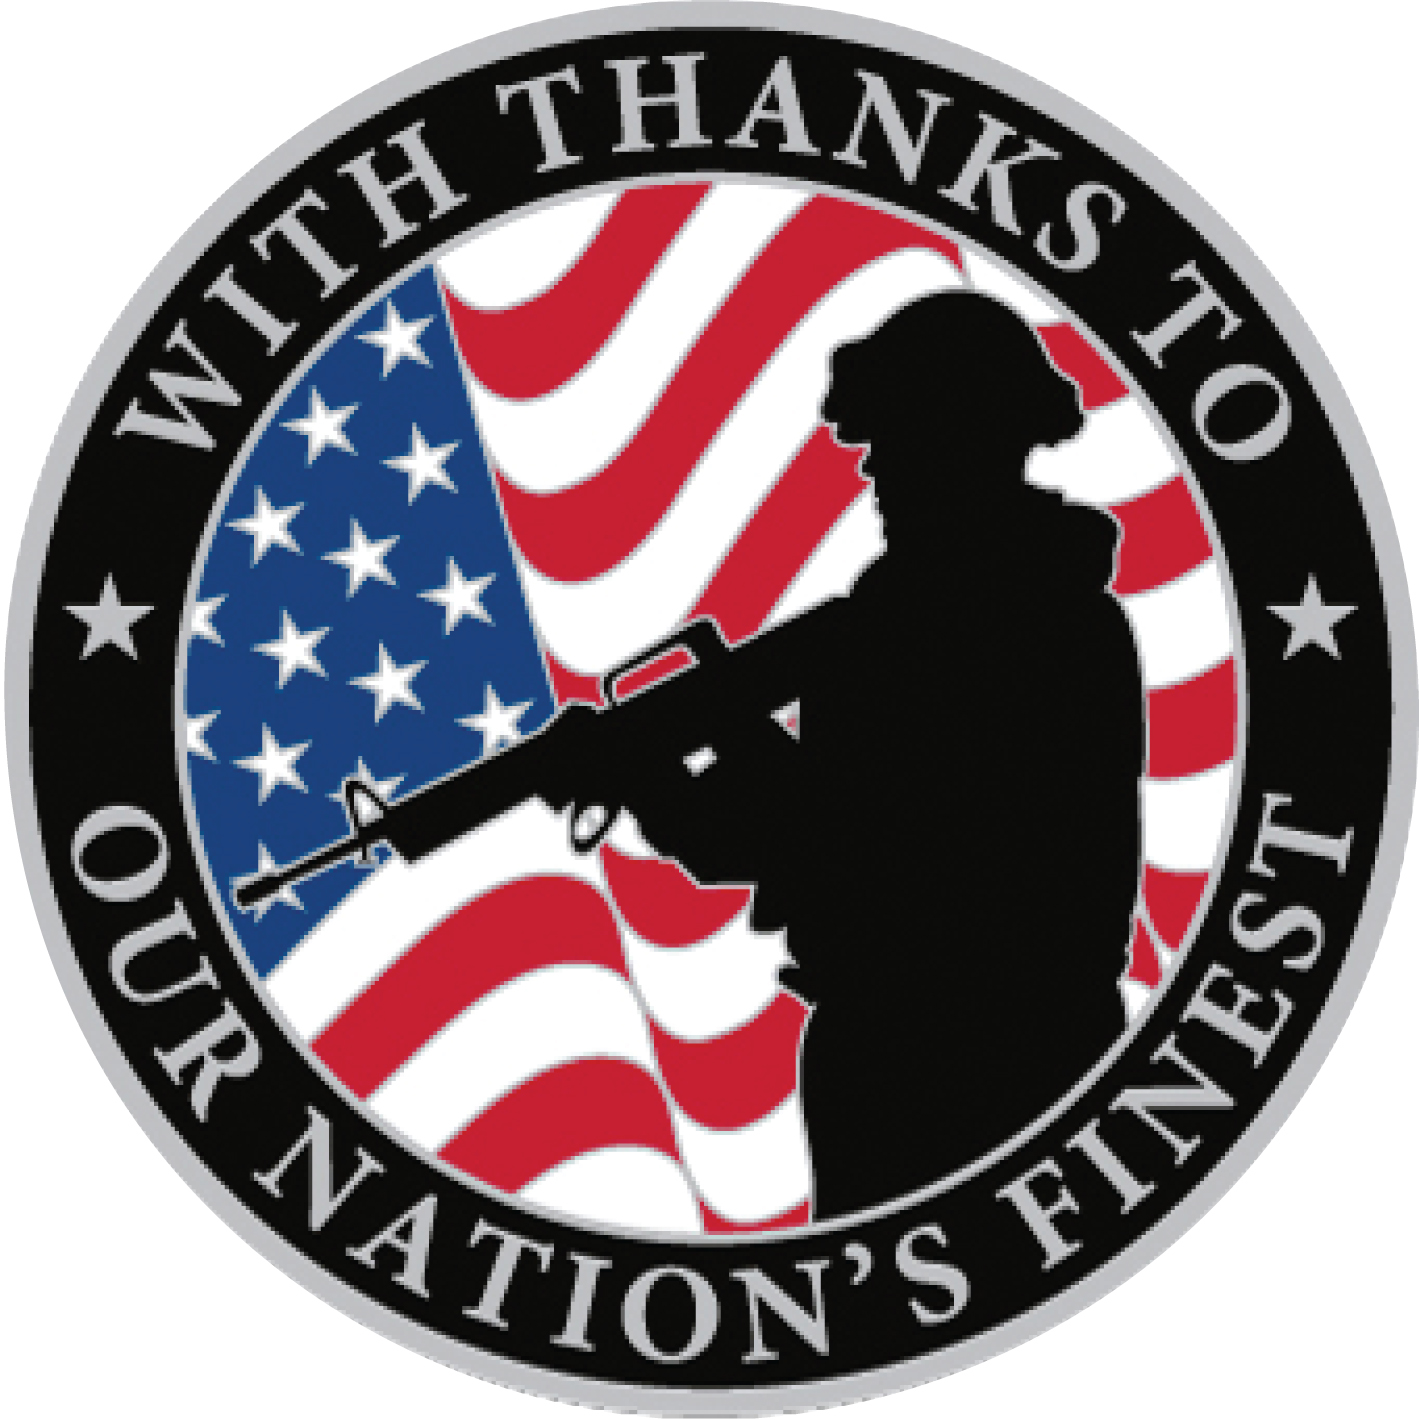 SMITH & WESSON® EXPANDS MILITARY APPRECIATION PROGRAM